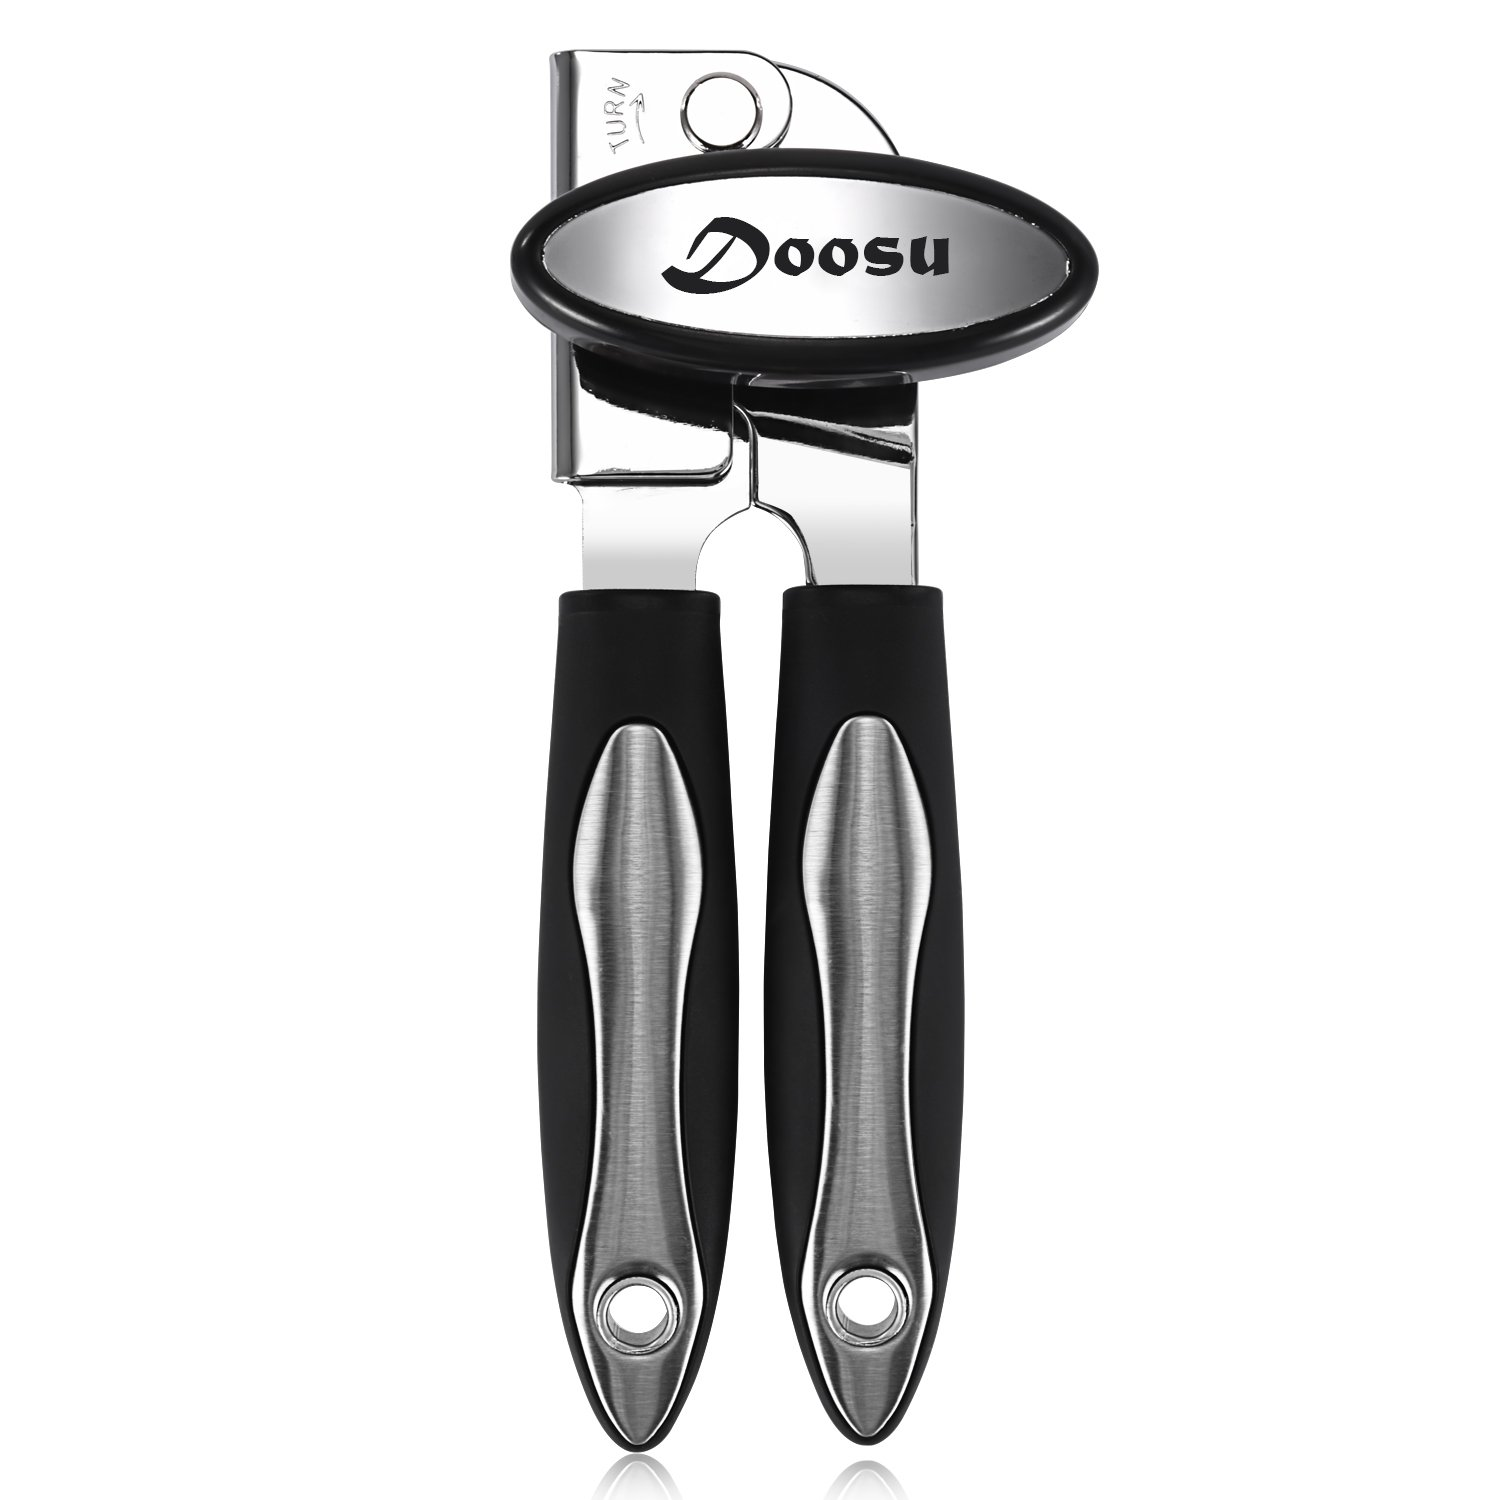 Can Opener Manual, U-Taste Good Grip Can Opener with Extra Sharp Blade, Heavy Duty Stainless Steel Can Opener COTD